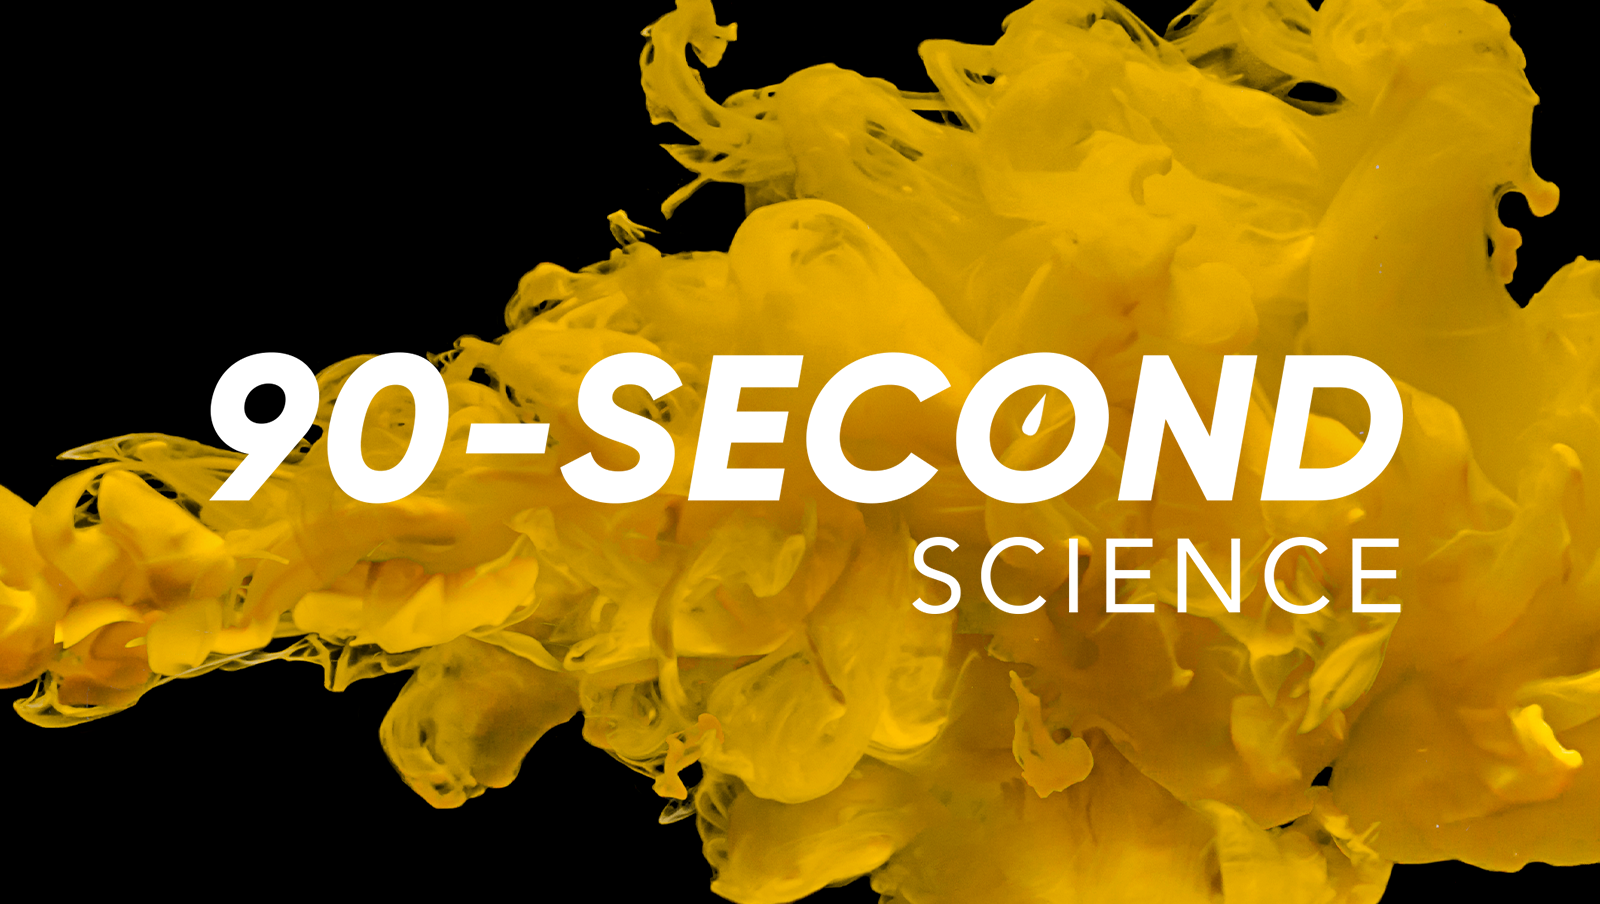 90-Second Science: Quick and Easy Science Experiments from HMH